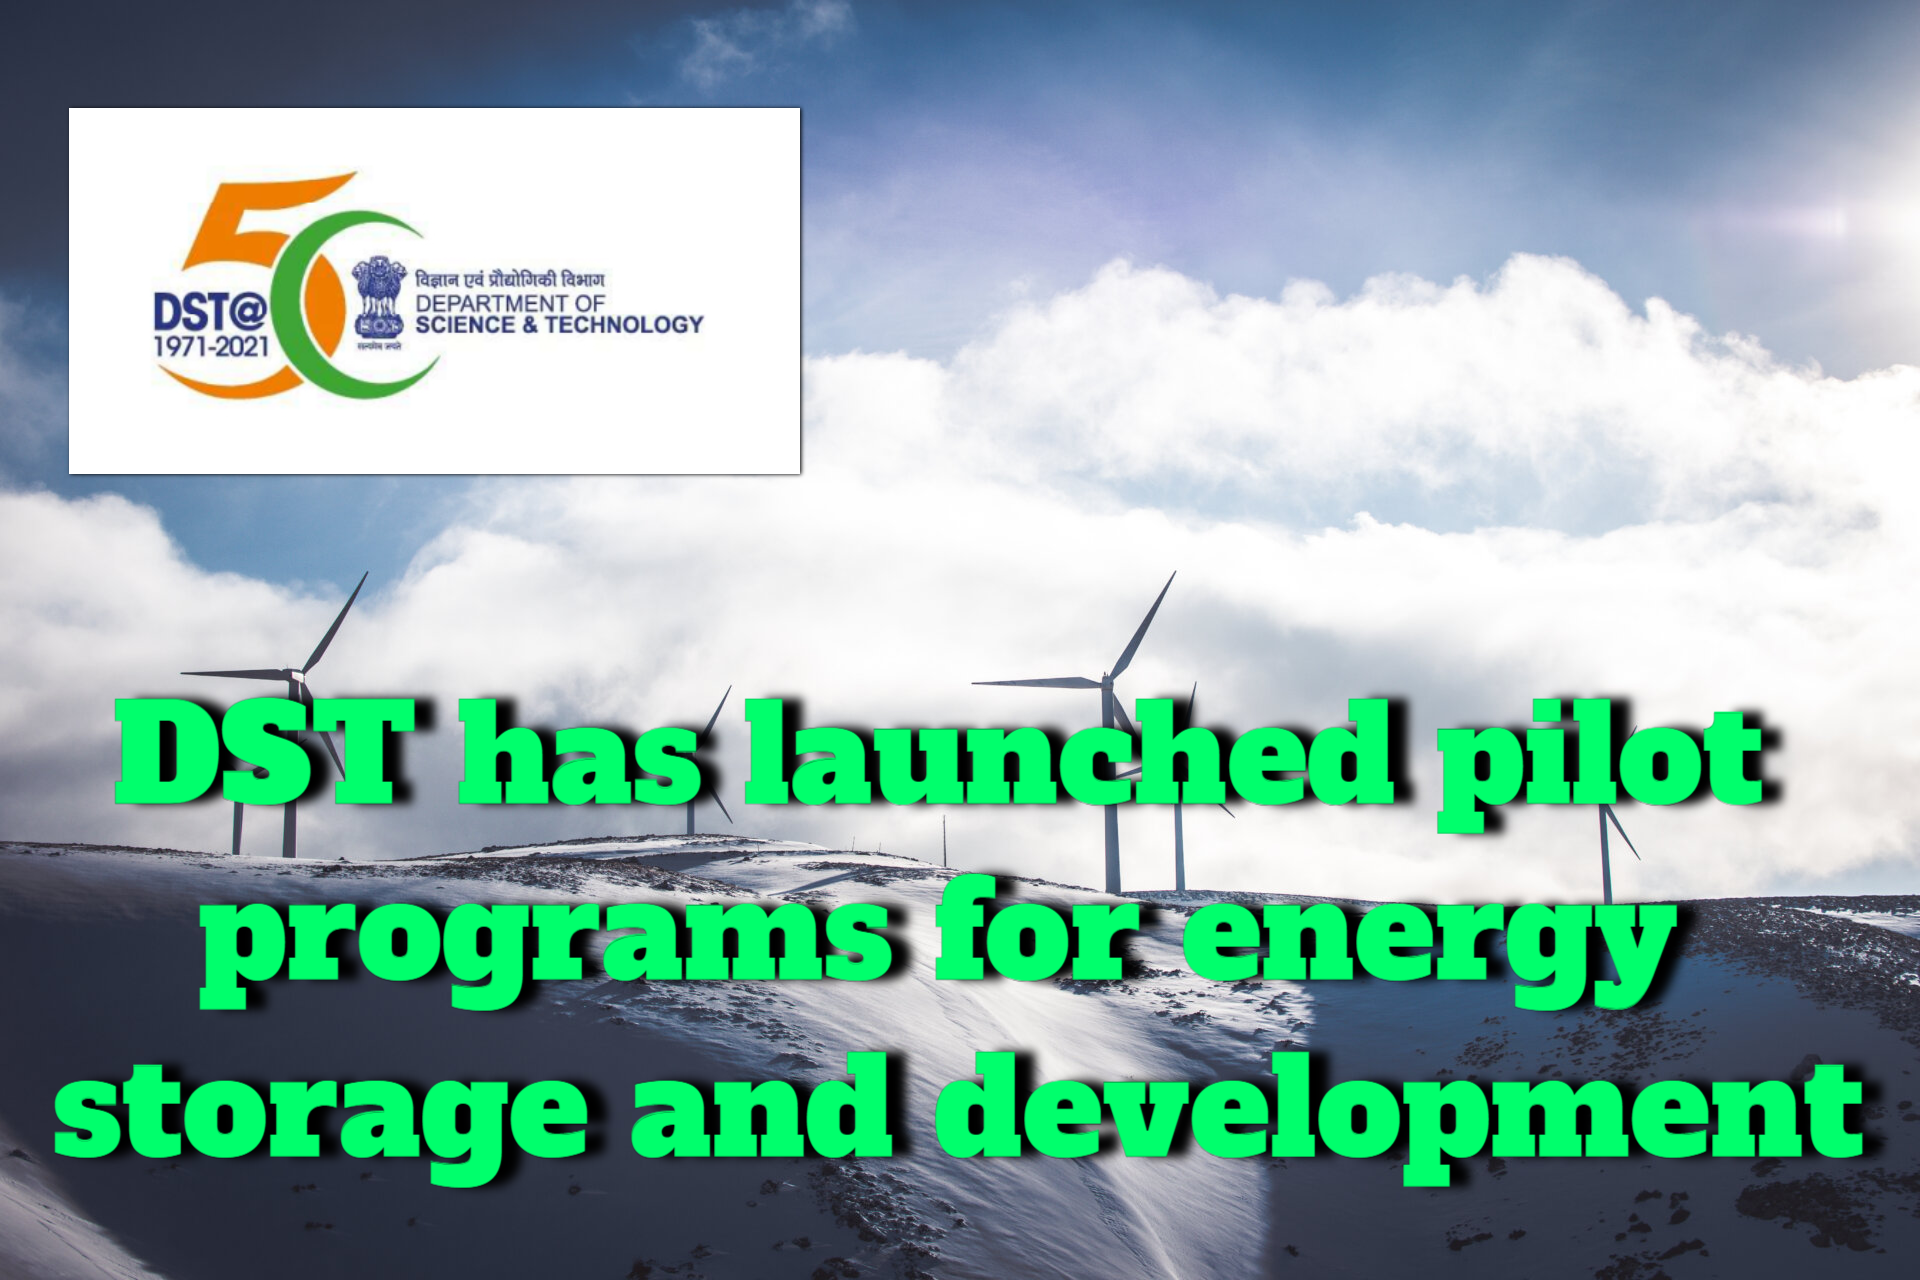 The DST proposes energy storage developments that could reach pilot stage